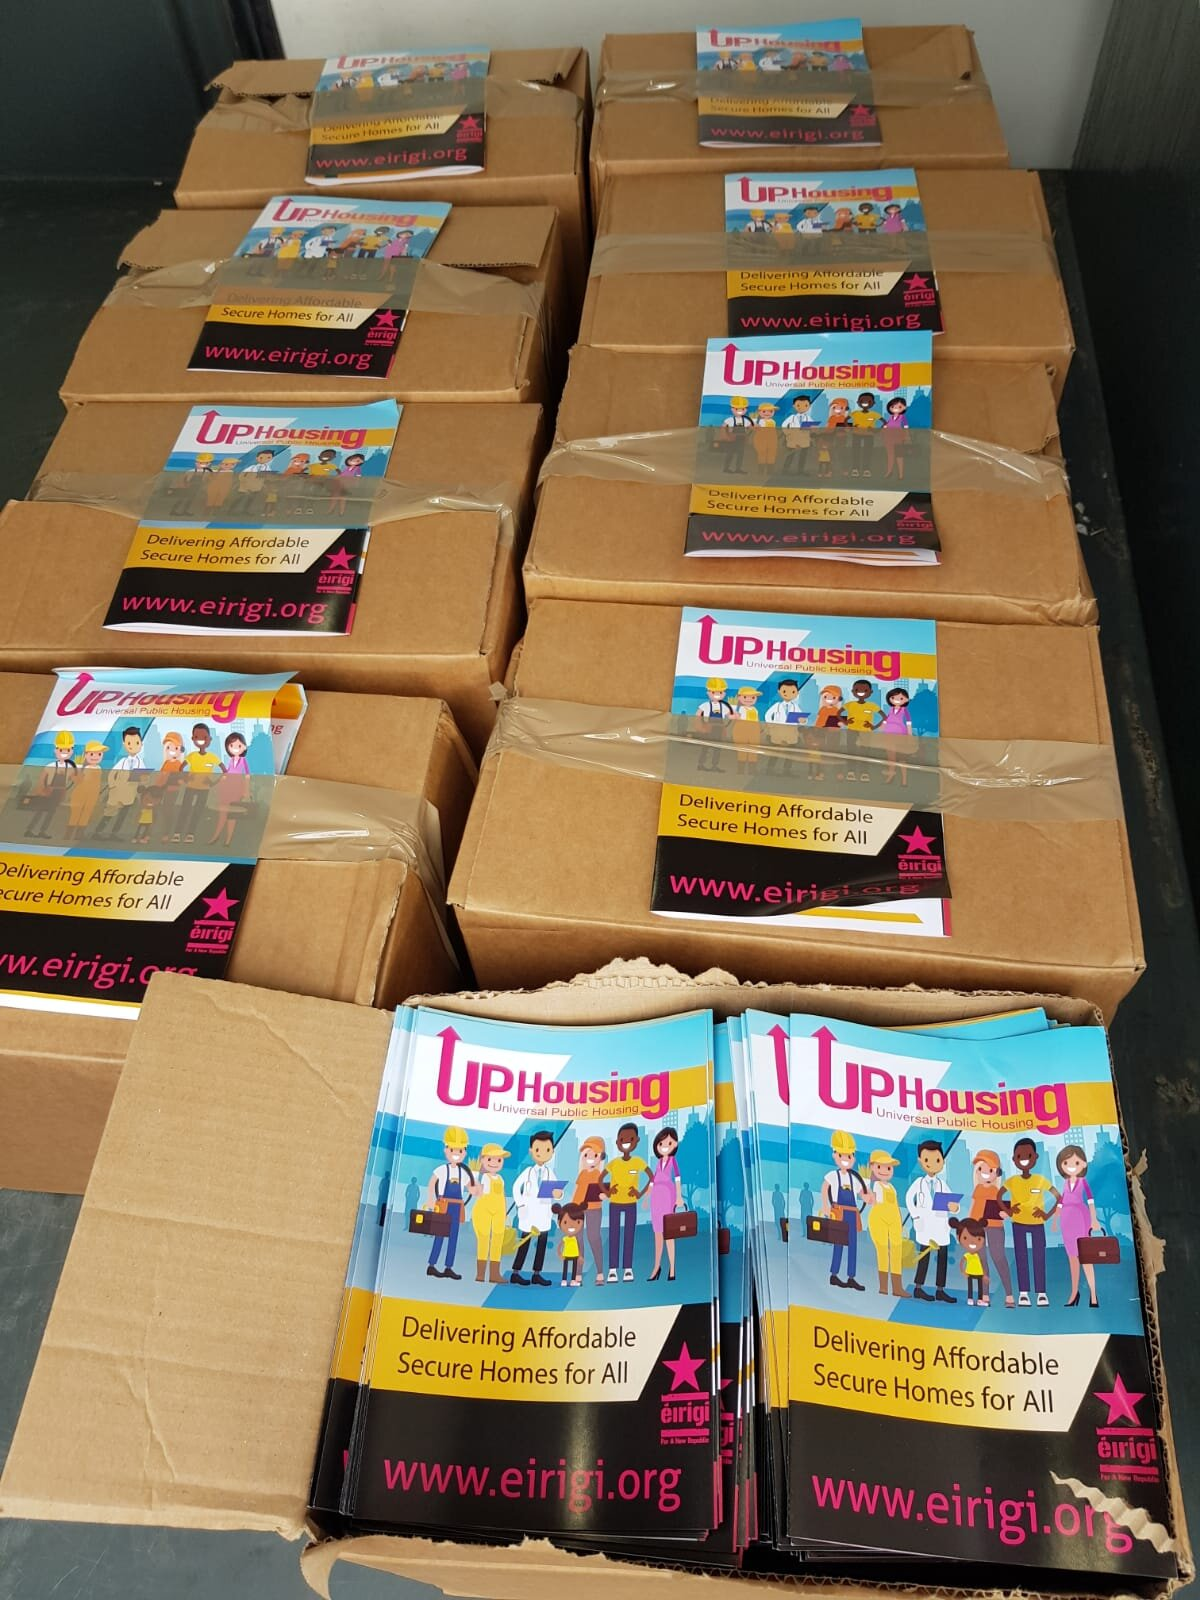 Boxes of the new six page UP Housing leaflet